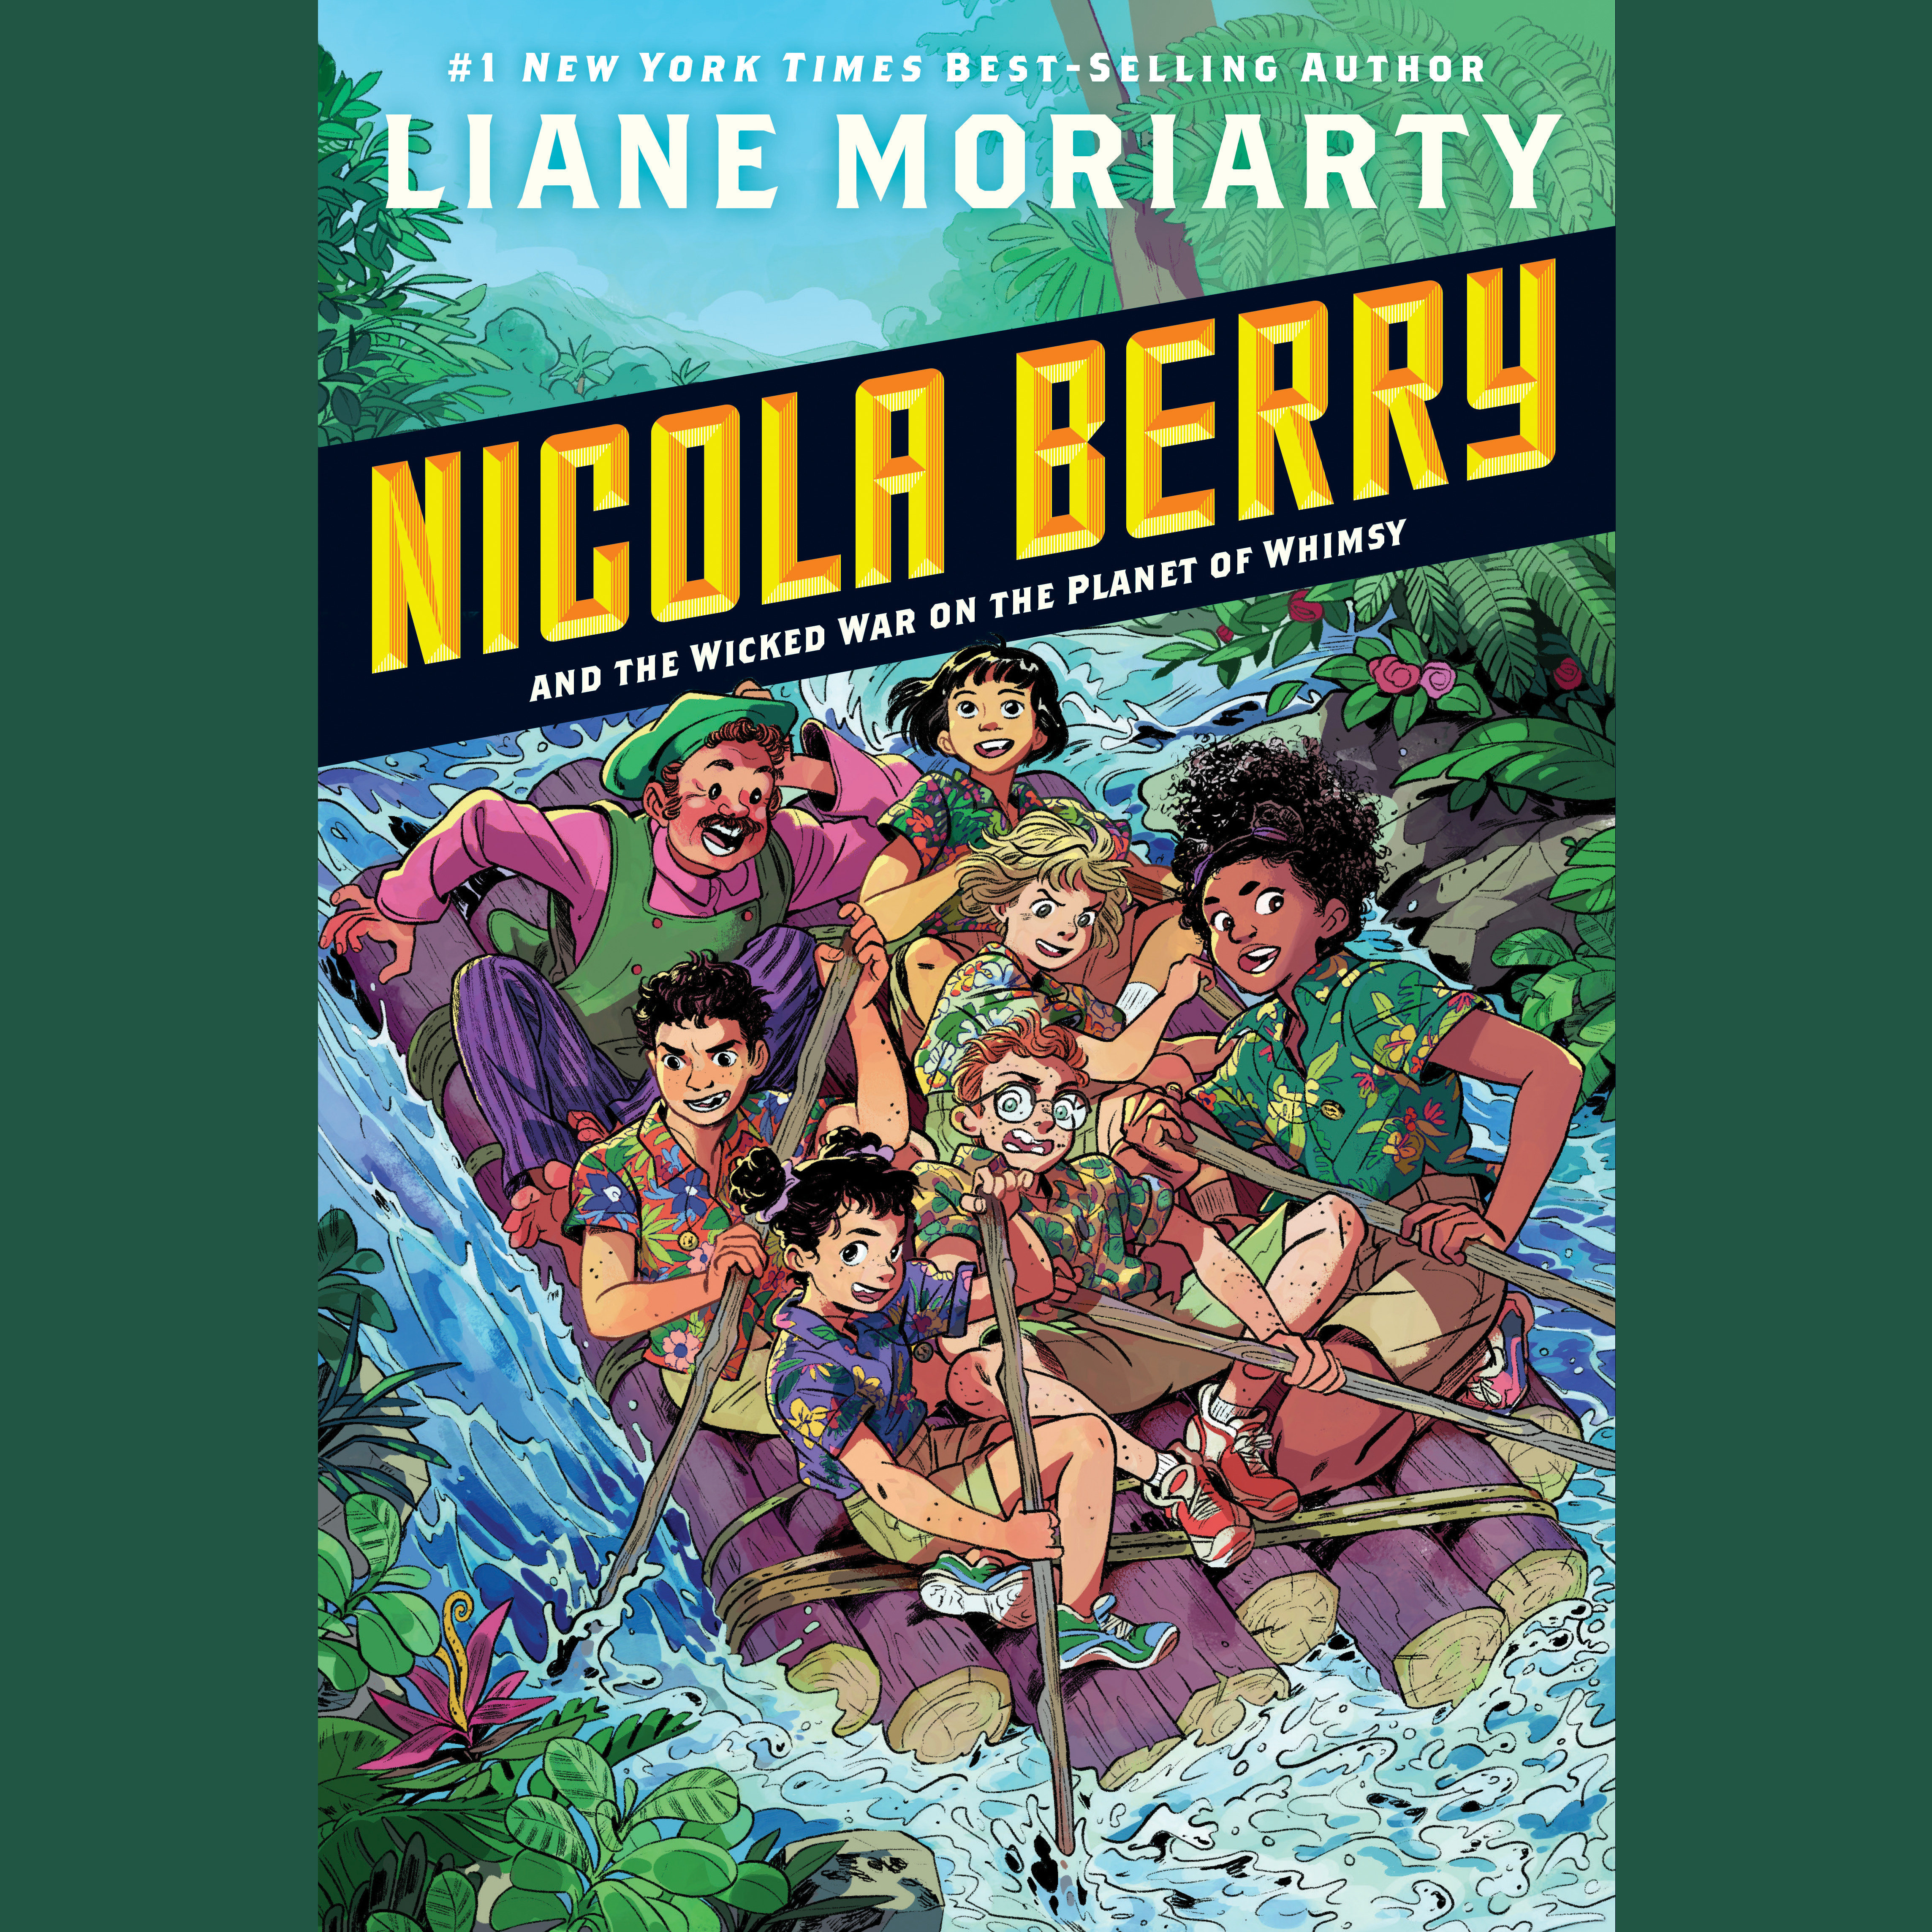 Printable Nicola Berry and the Wicked War on the Planet of Whimsy #3 Audiobook Cover Art